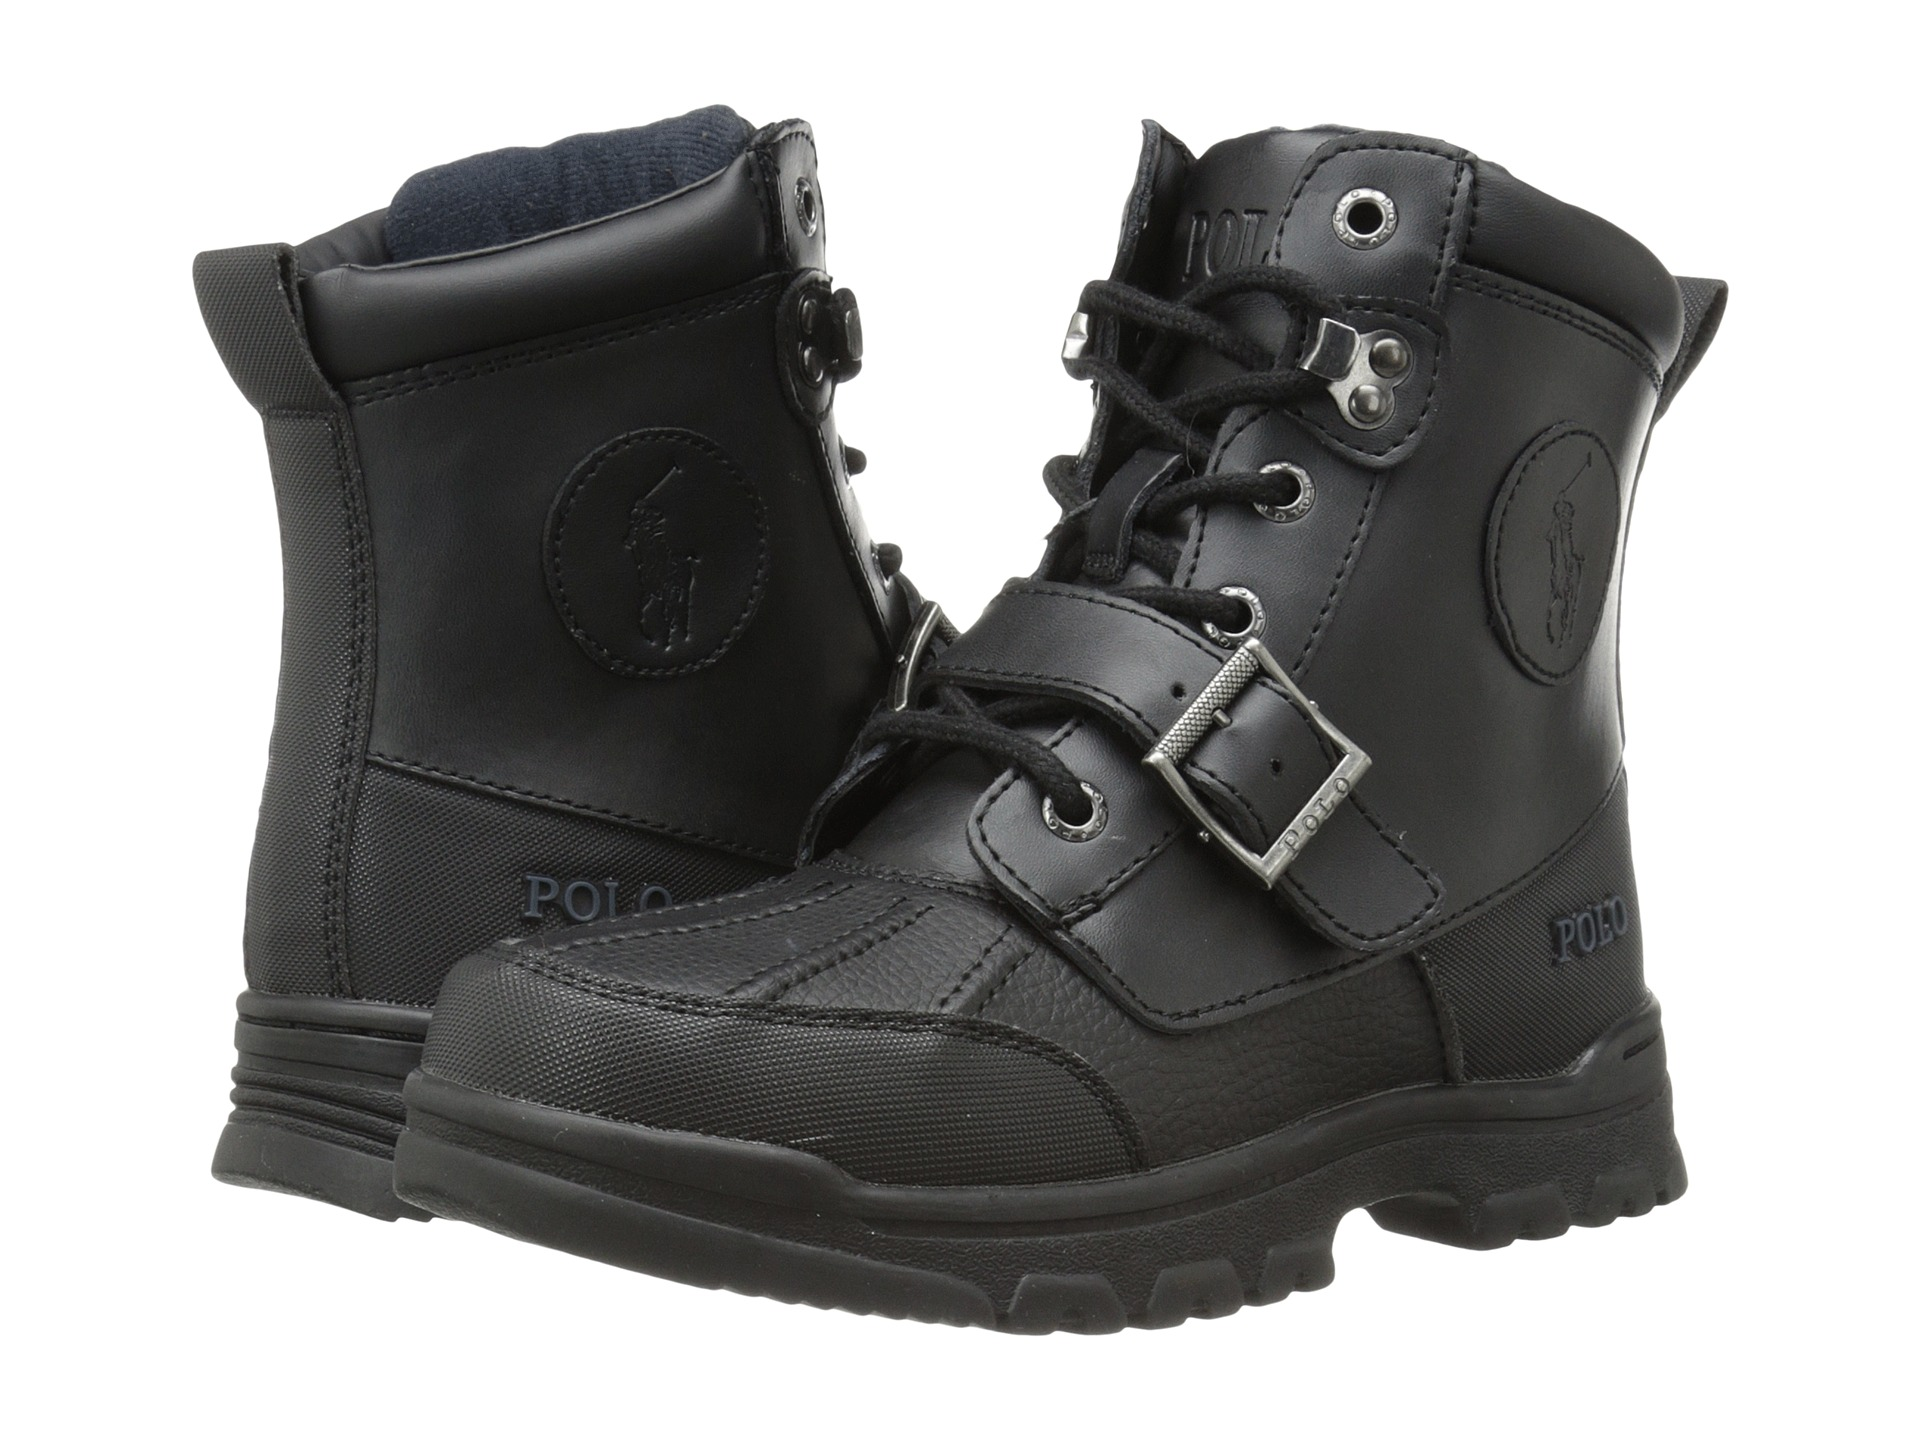 Polo Ralph Lauren Kids Colbey Boot FT14 (Big Kid) Black Tumbled/Burnished Leather - Zappos.com Free Shipping BOTH Ways